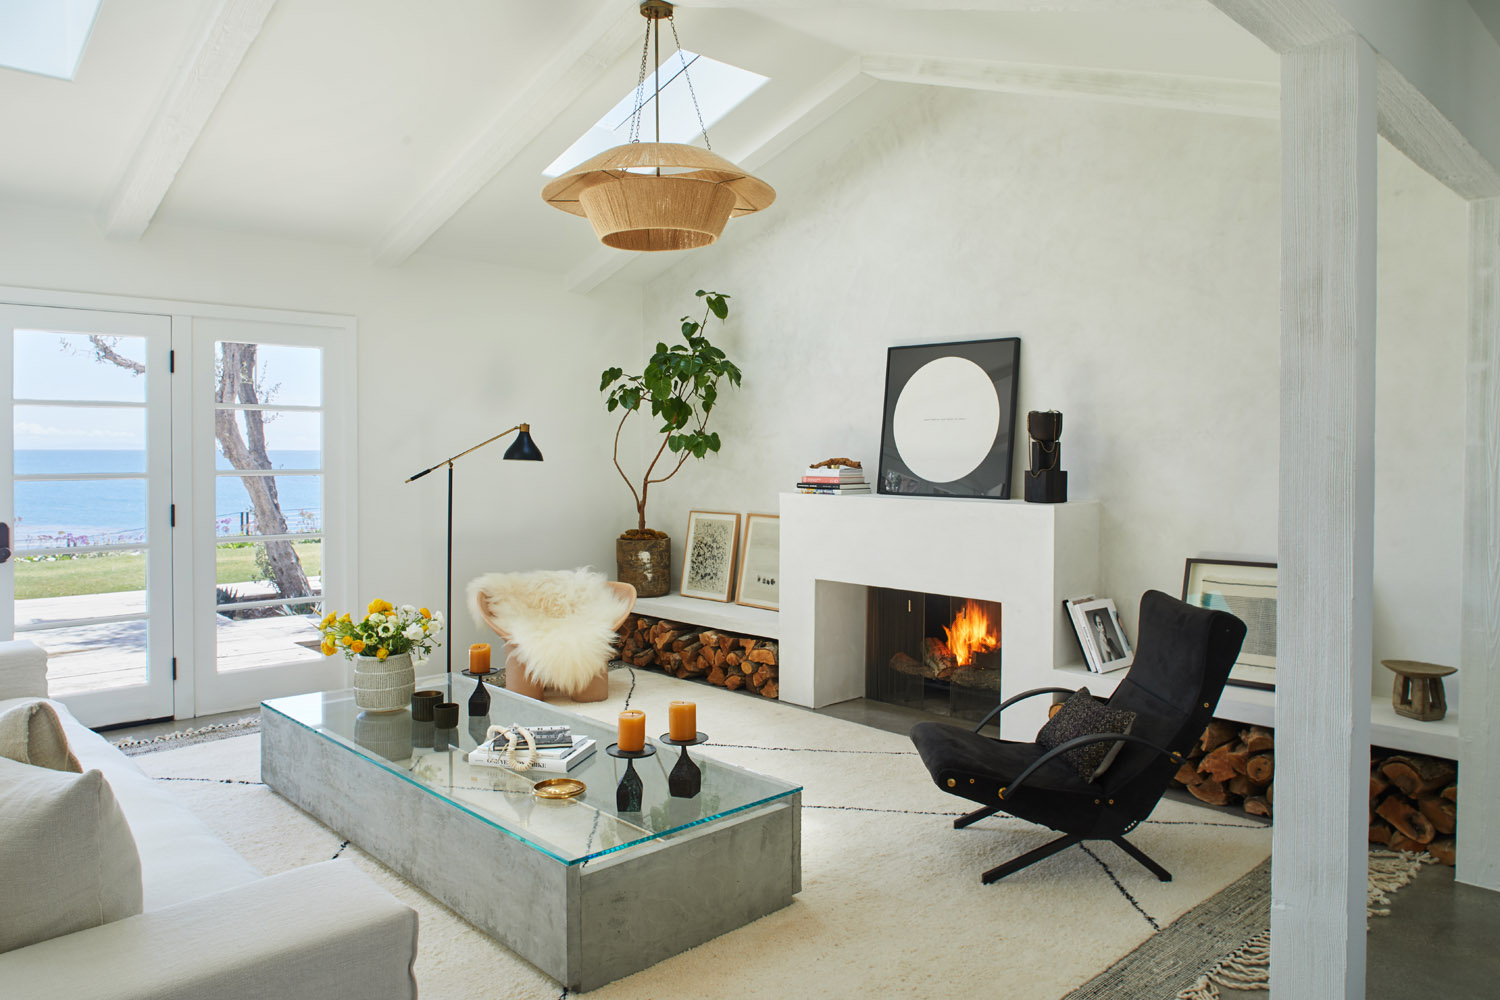 Home Tour-Making Waves in Malibu 2.jpg